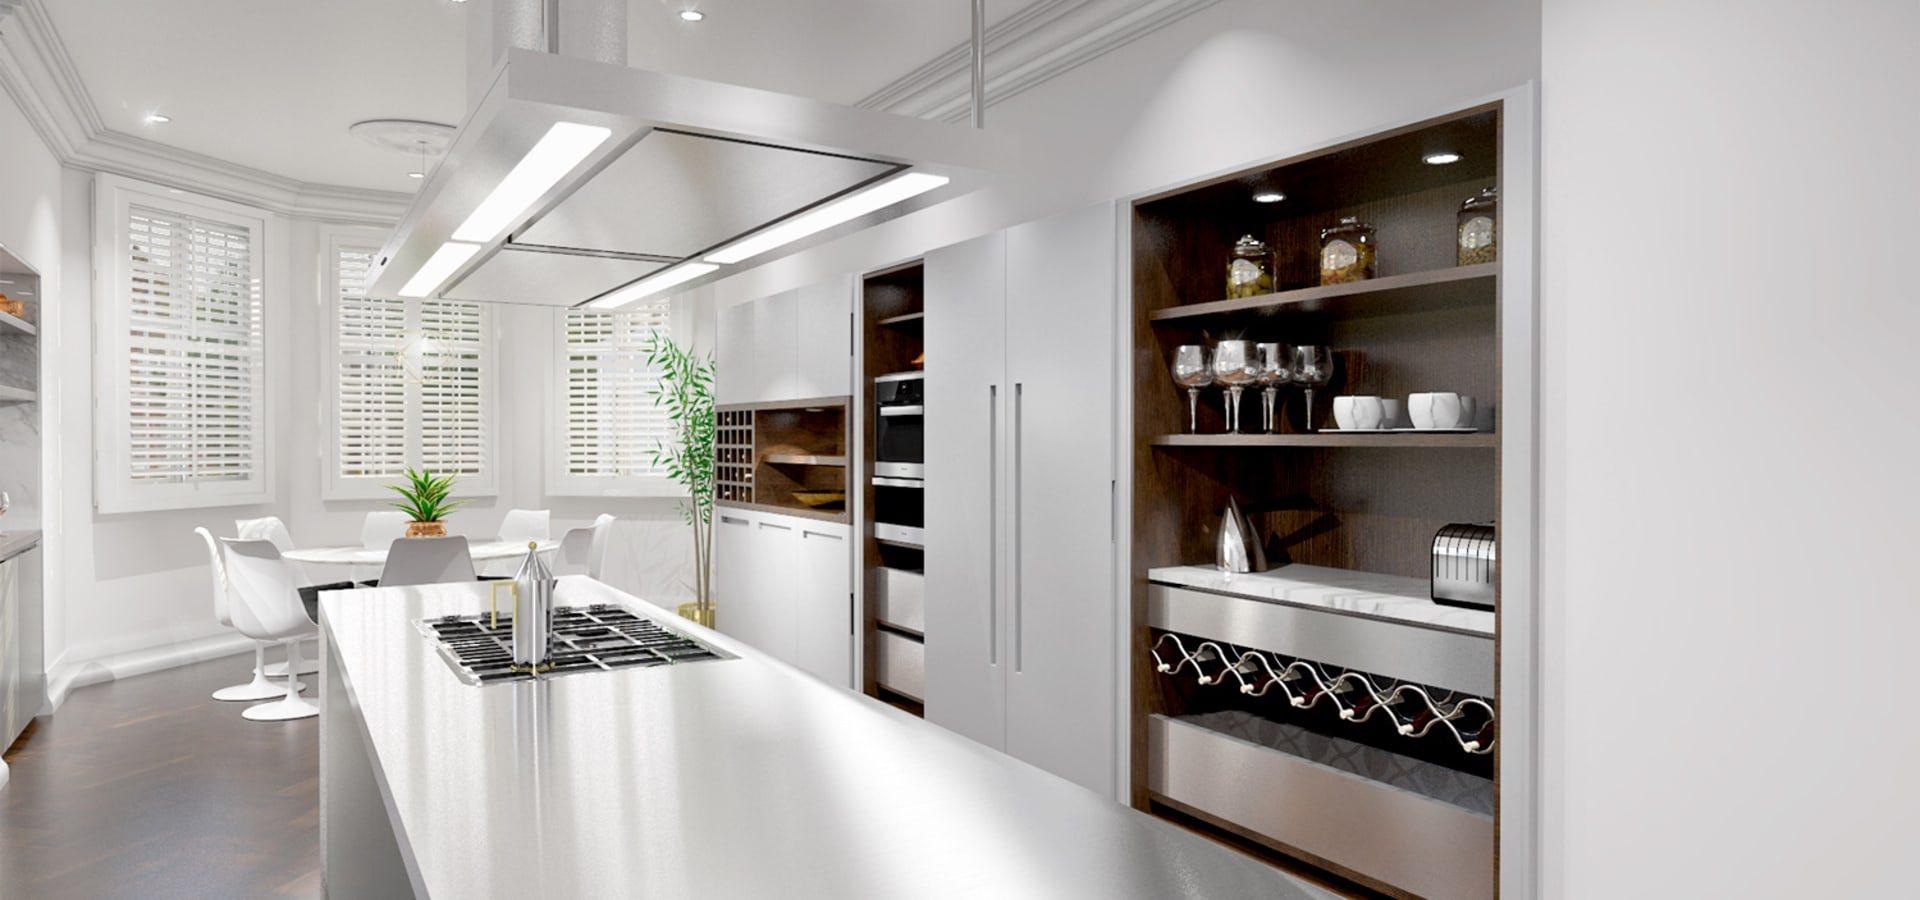 Captivating Outsourcing Interior Design